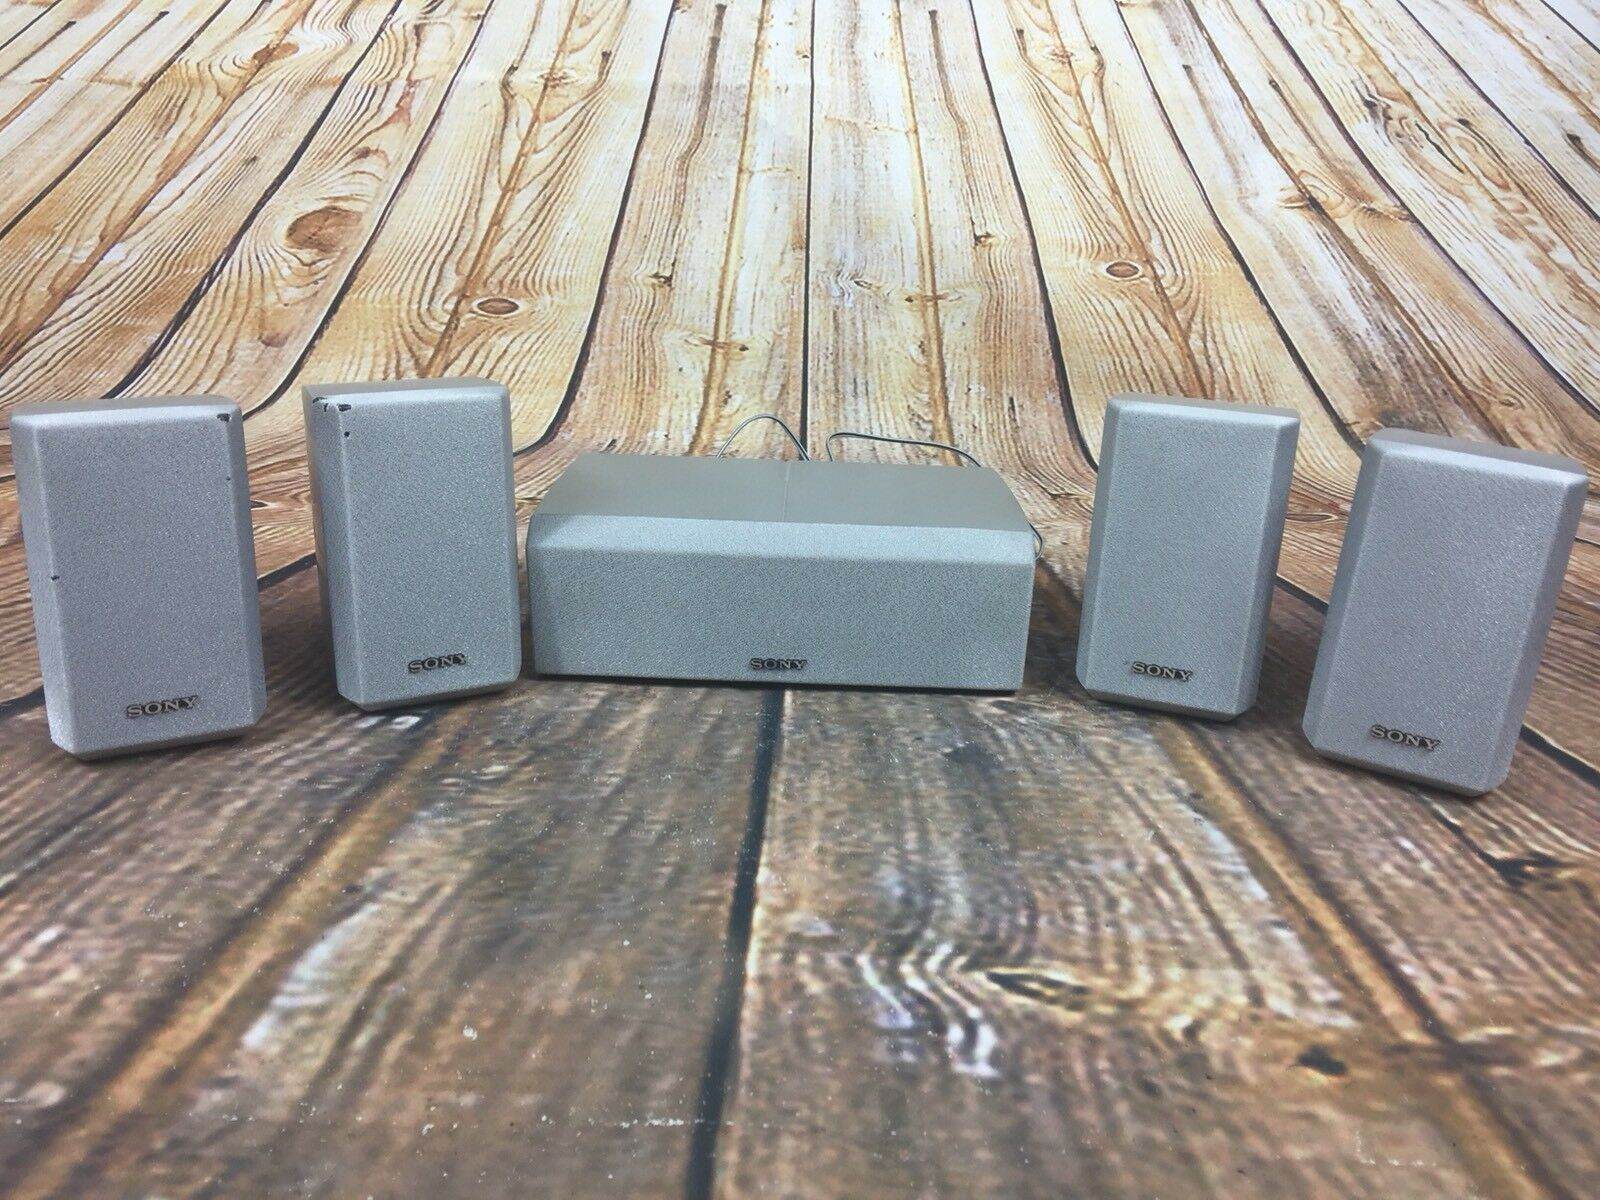 Sony SS-CNP2 Center & SS-MSP2 Surround Sound Stereo Speakers Complete Set Of 5